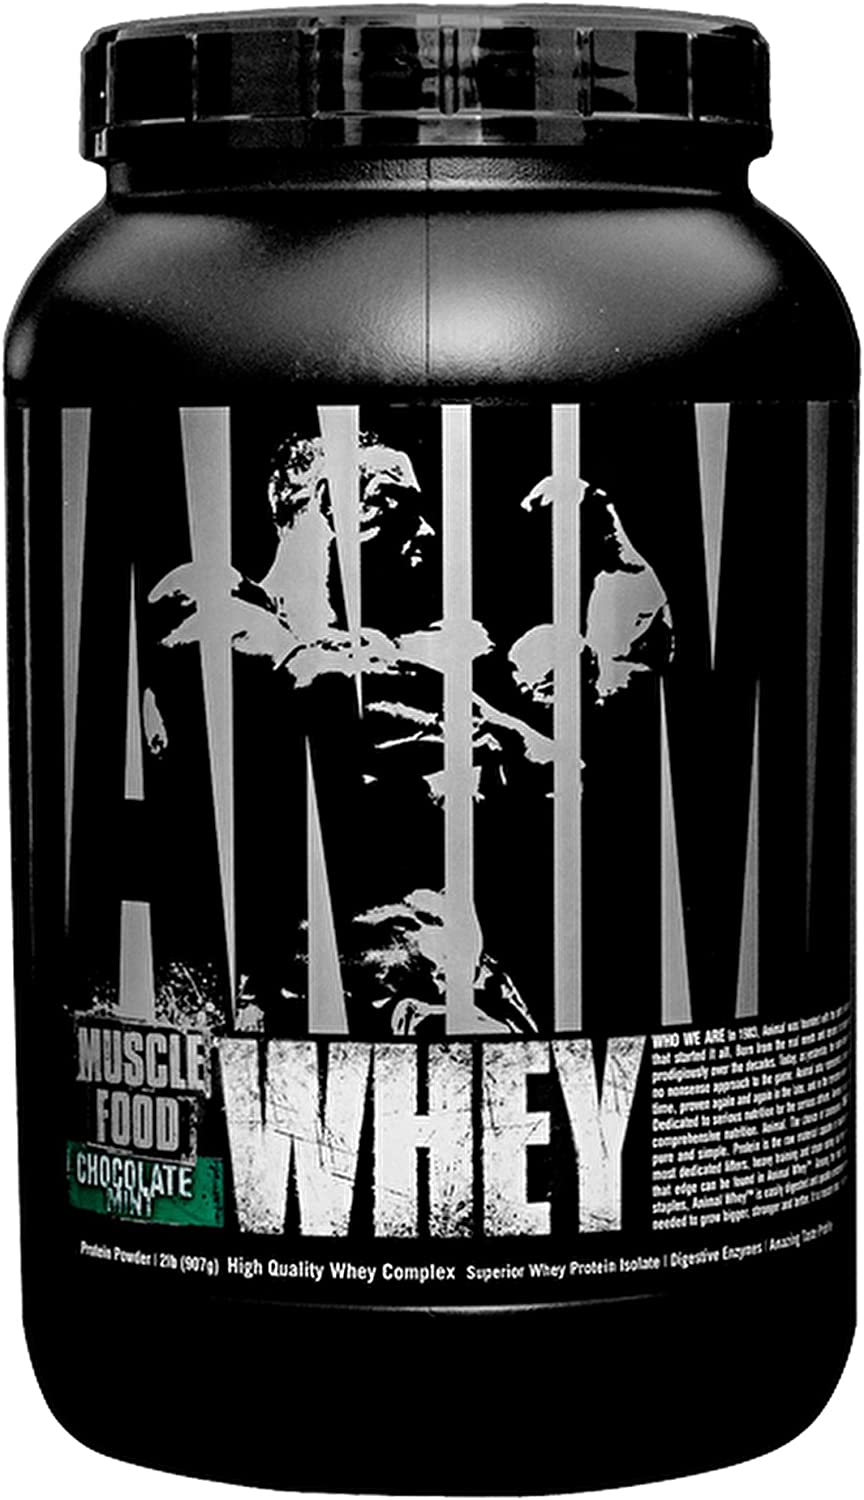 Universal Nutrition Animal Whey Isolate Loaded Whey Predein Powder Supplement, Chocolate Mint, 2 Pound